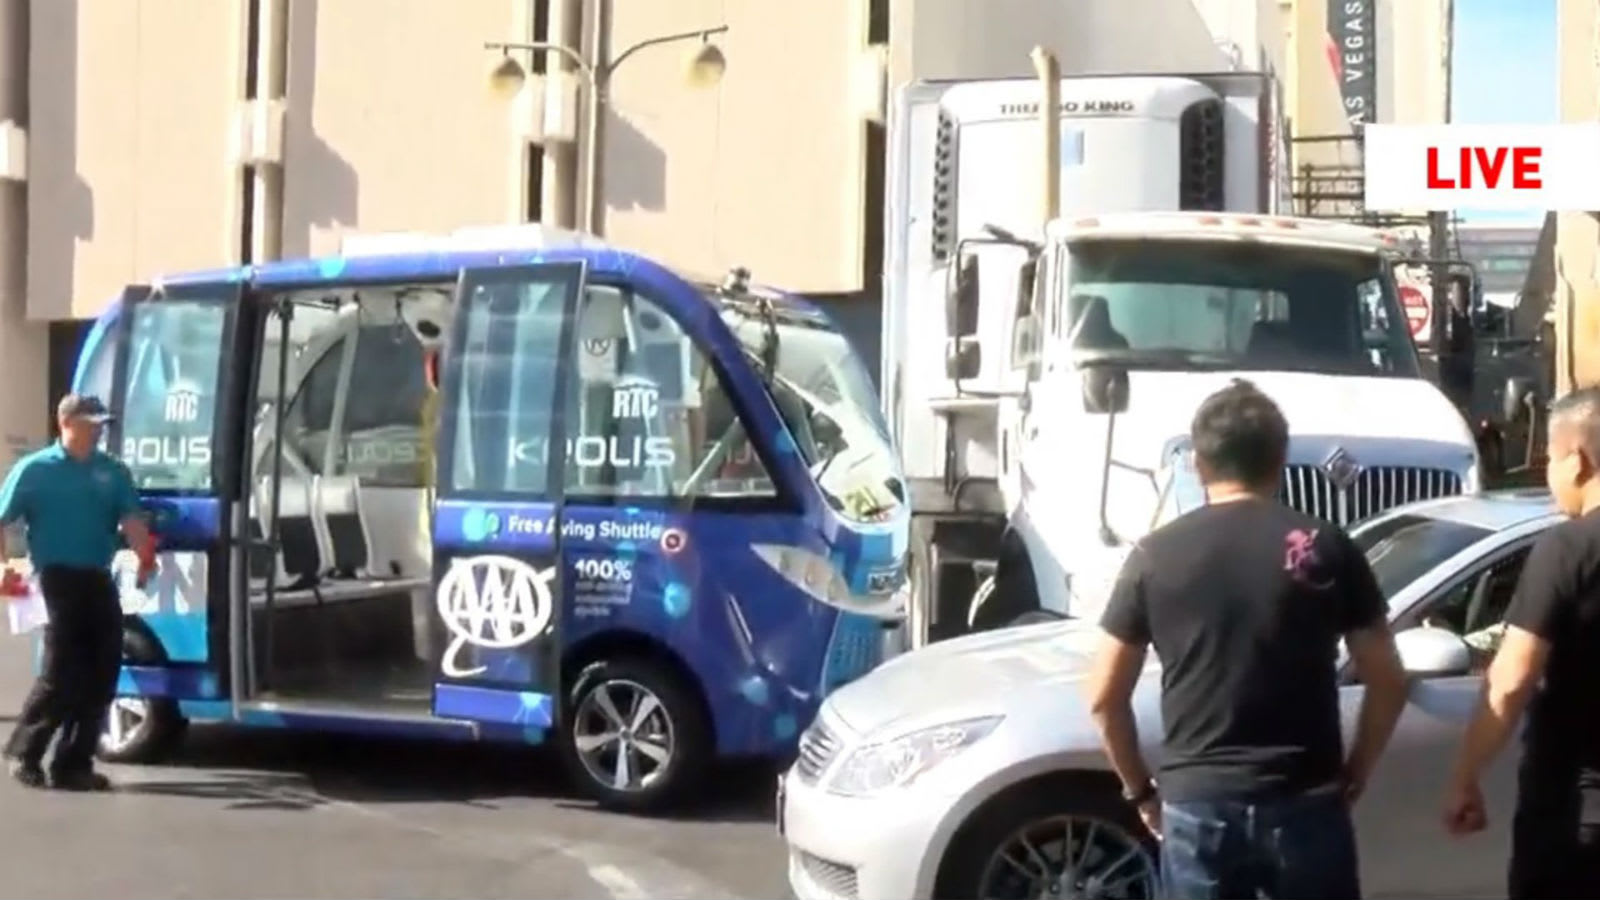 Las Vegas Shuttles >> Las Vegas Self Driving Bus Crashes In First Hour Of Service